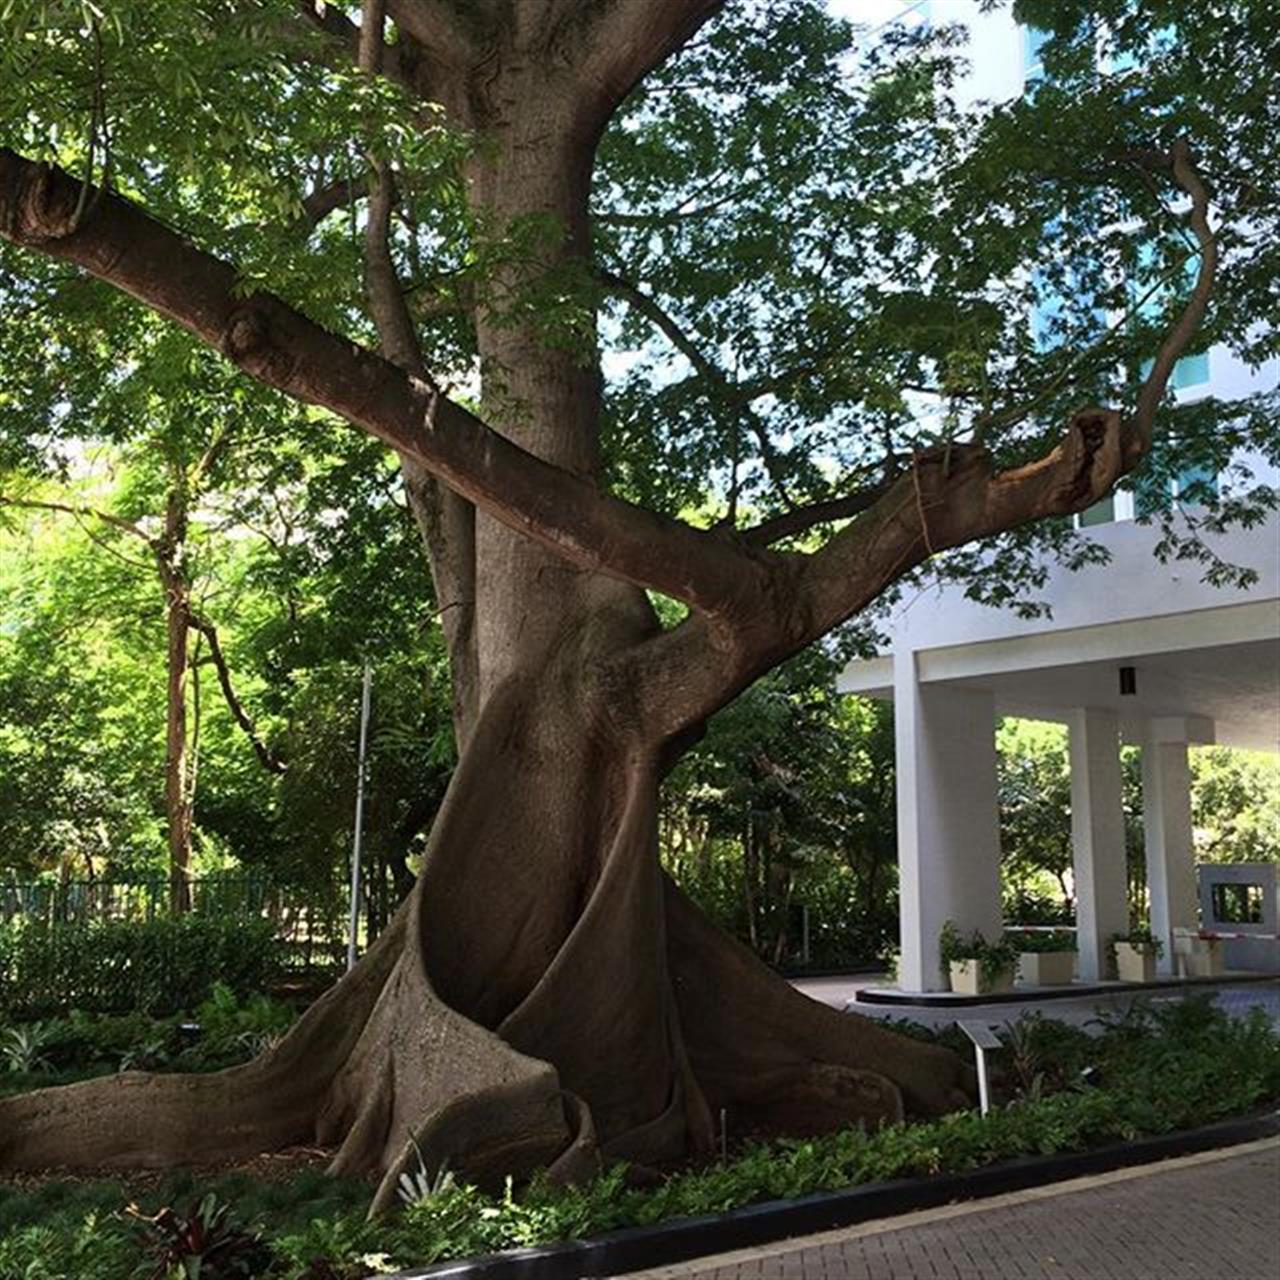 #KapokTree #MiamiRiverDistrict #TerrazasMiami #LeadingRELocal